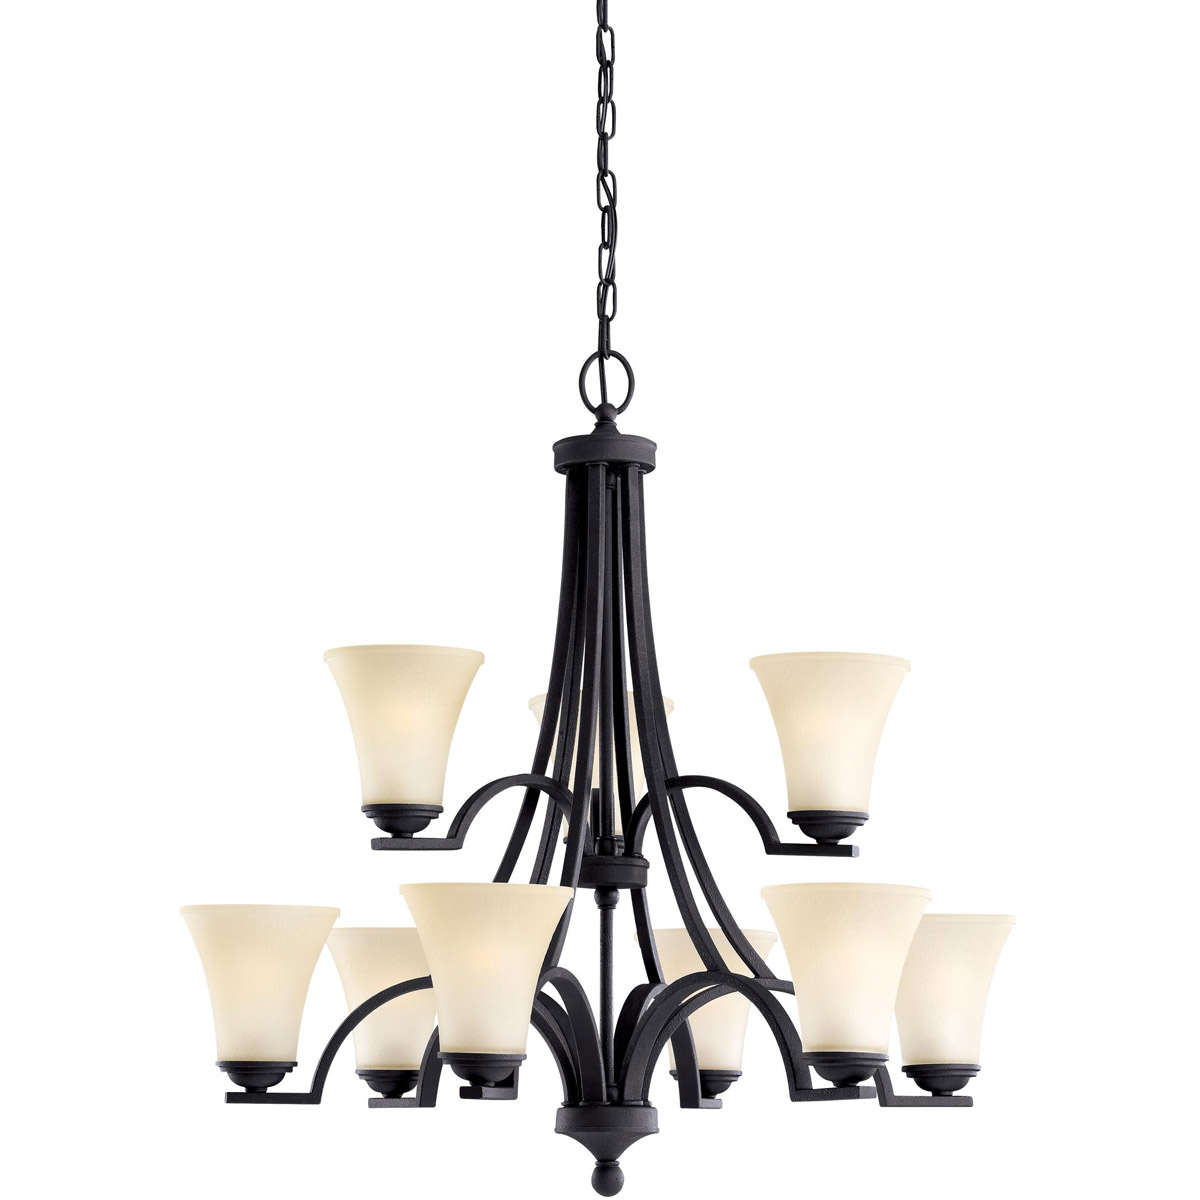 Sea Gull Lighting Somerton 9 Light Chandelier in Blacksmith 31377-839 photo